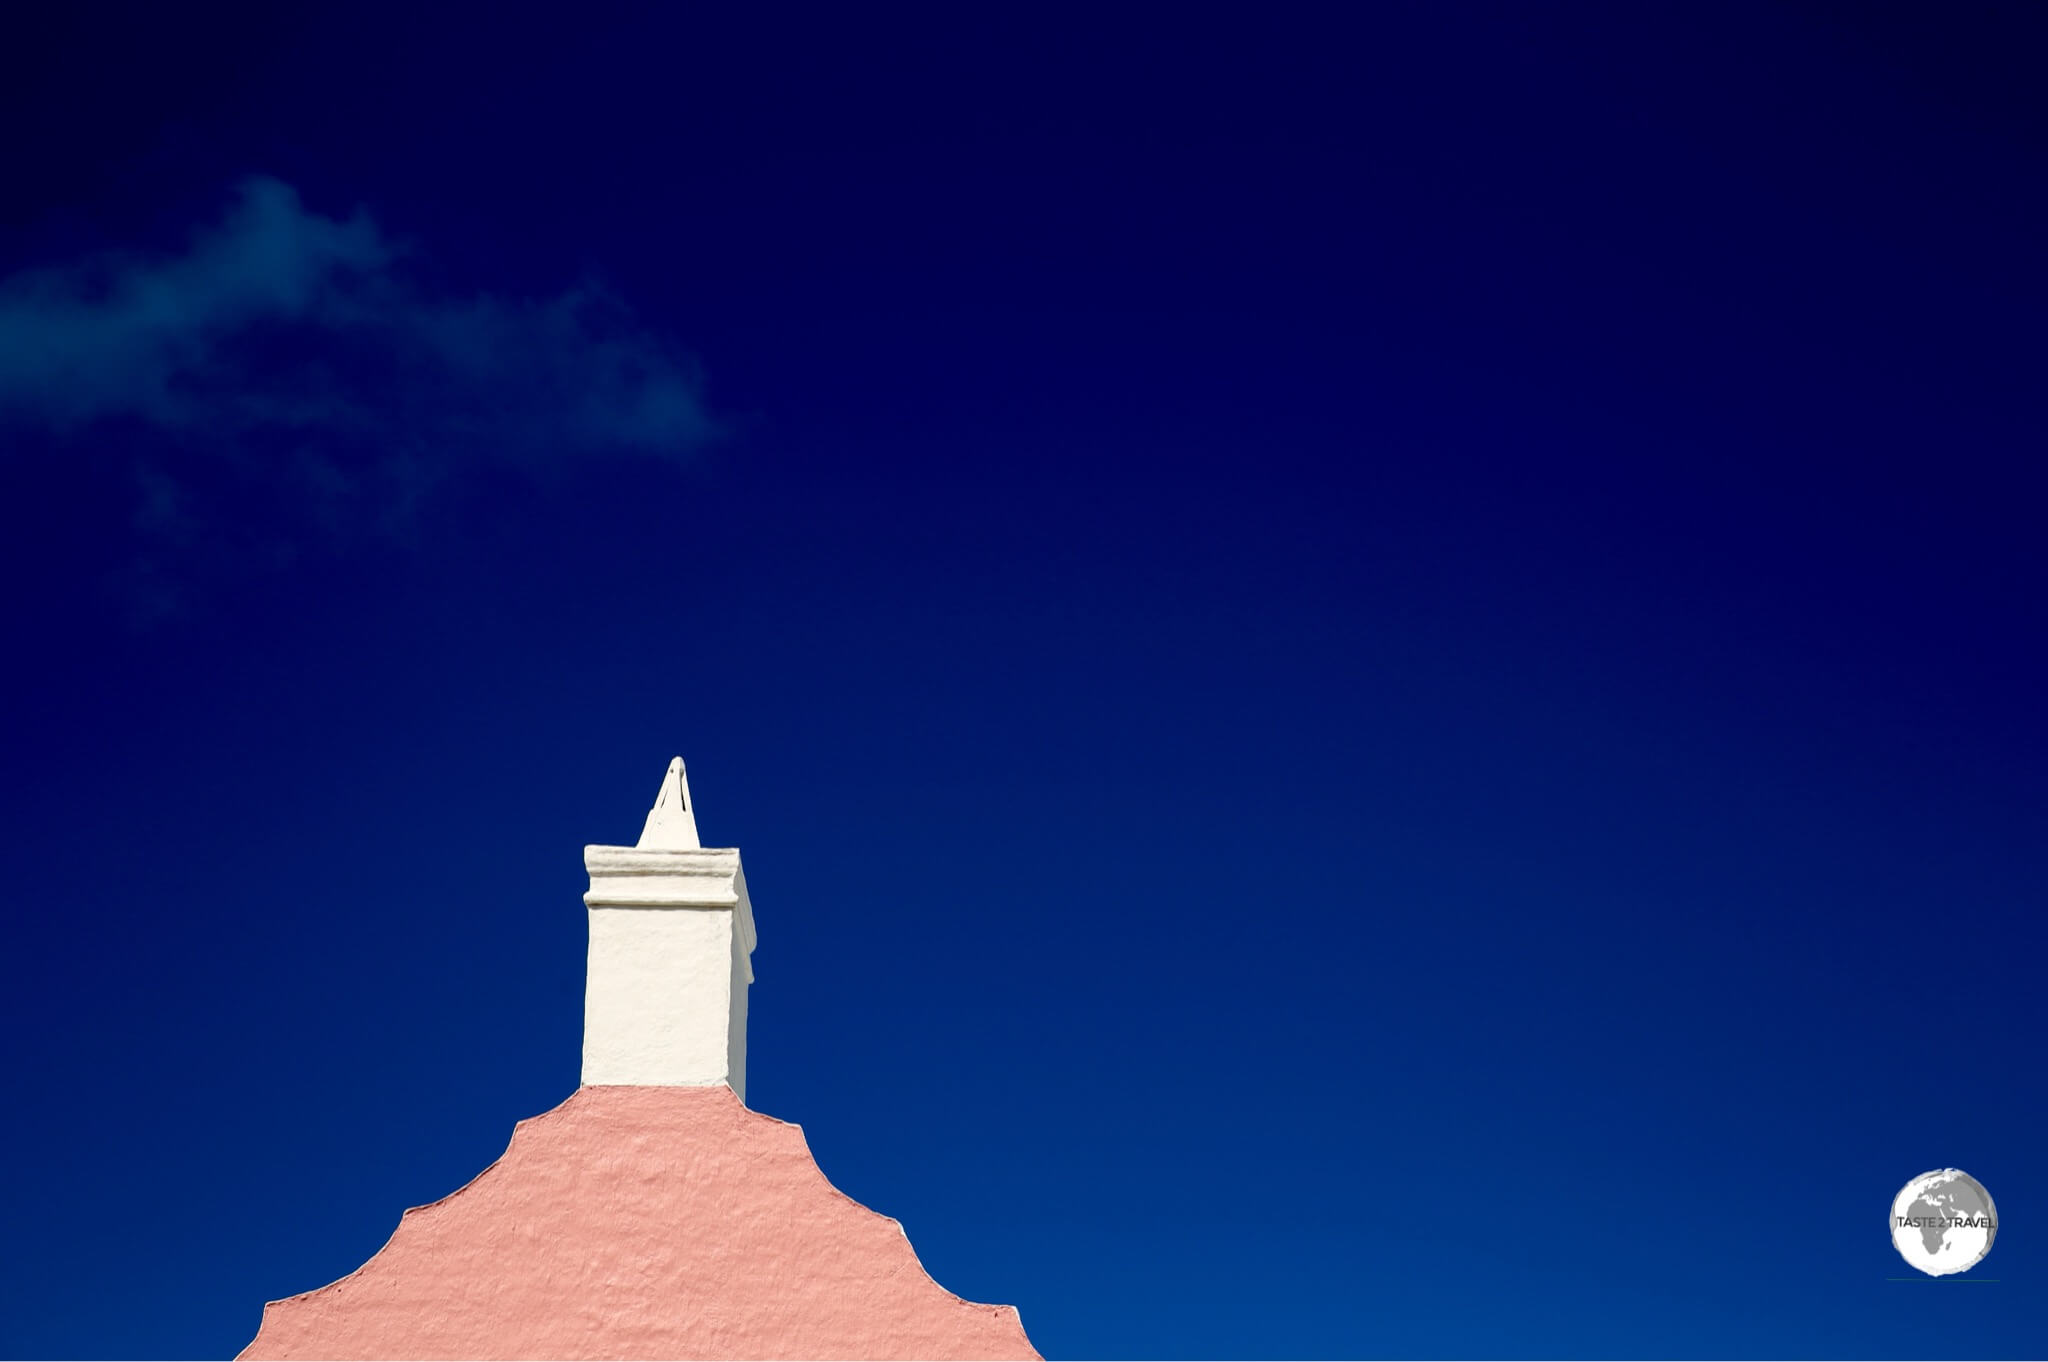 A pink gable and white chimney contrast nicely against the blue Bermuda sky.